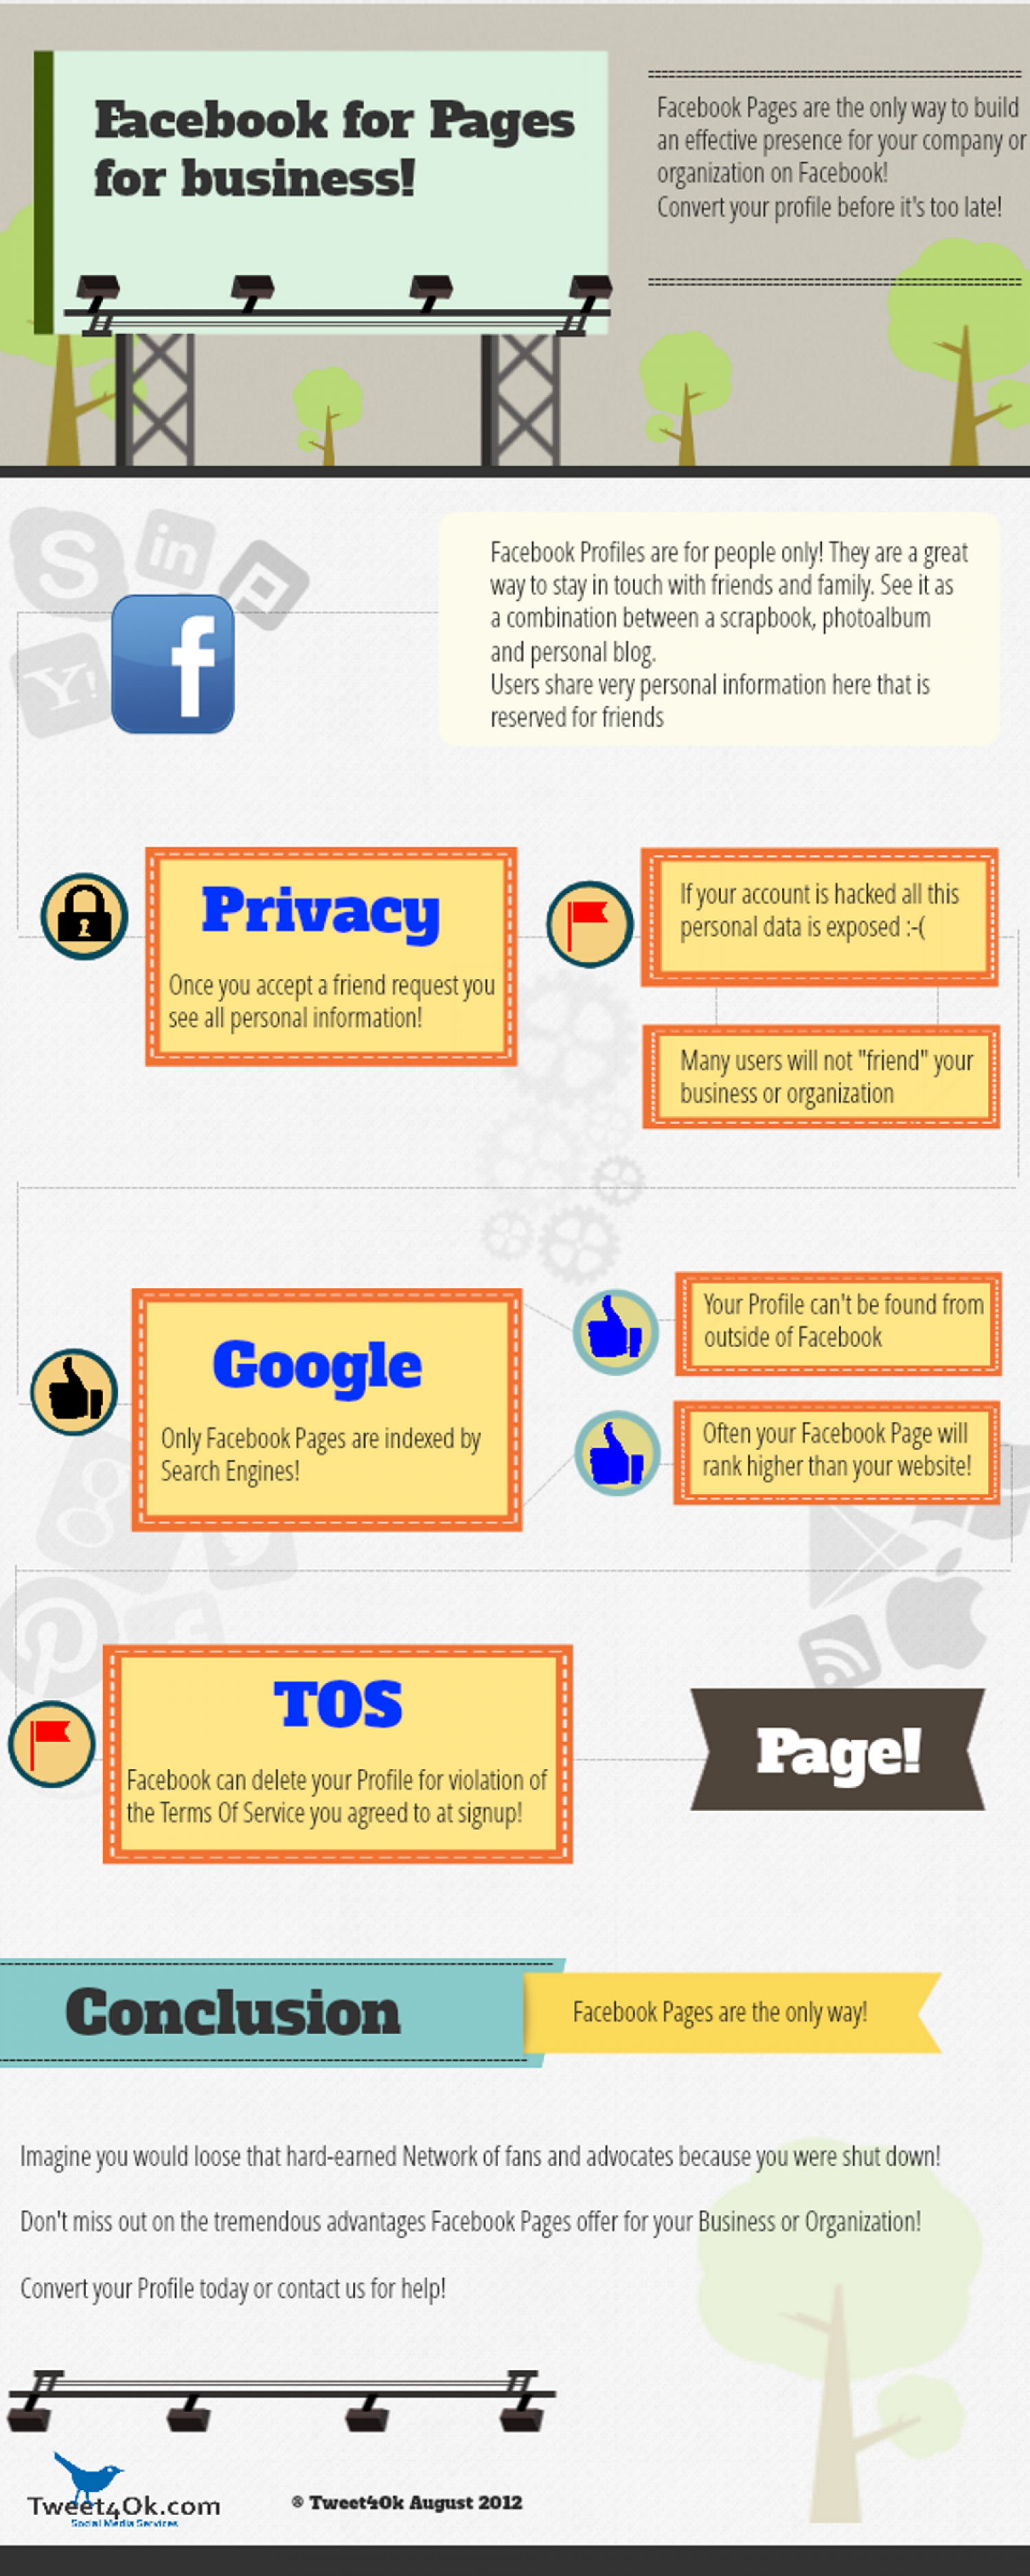 Facebook Pages Infographic